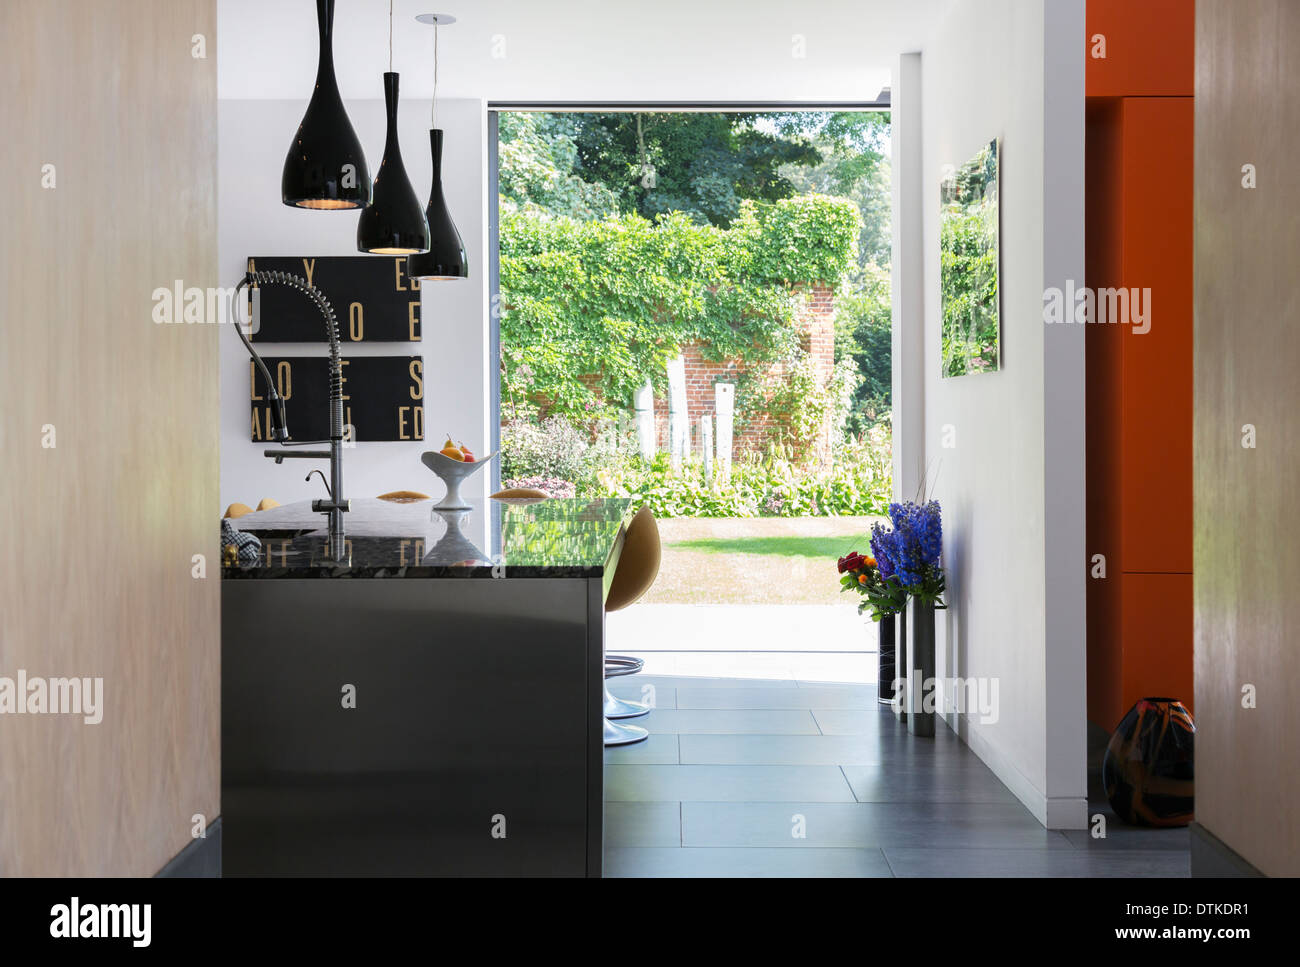 Kitchen Window Garden Through Window Garden Stock Photos Through Window Garden Stock